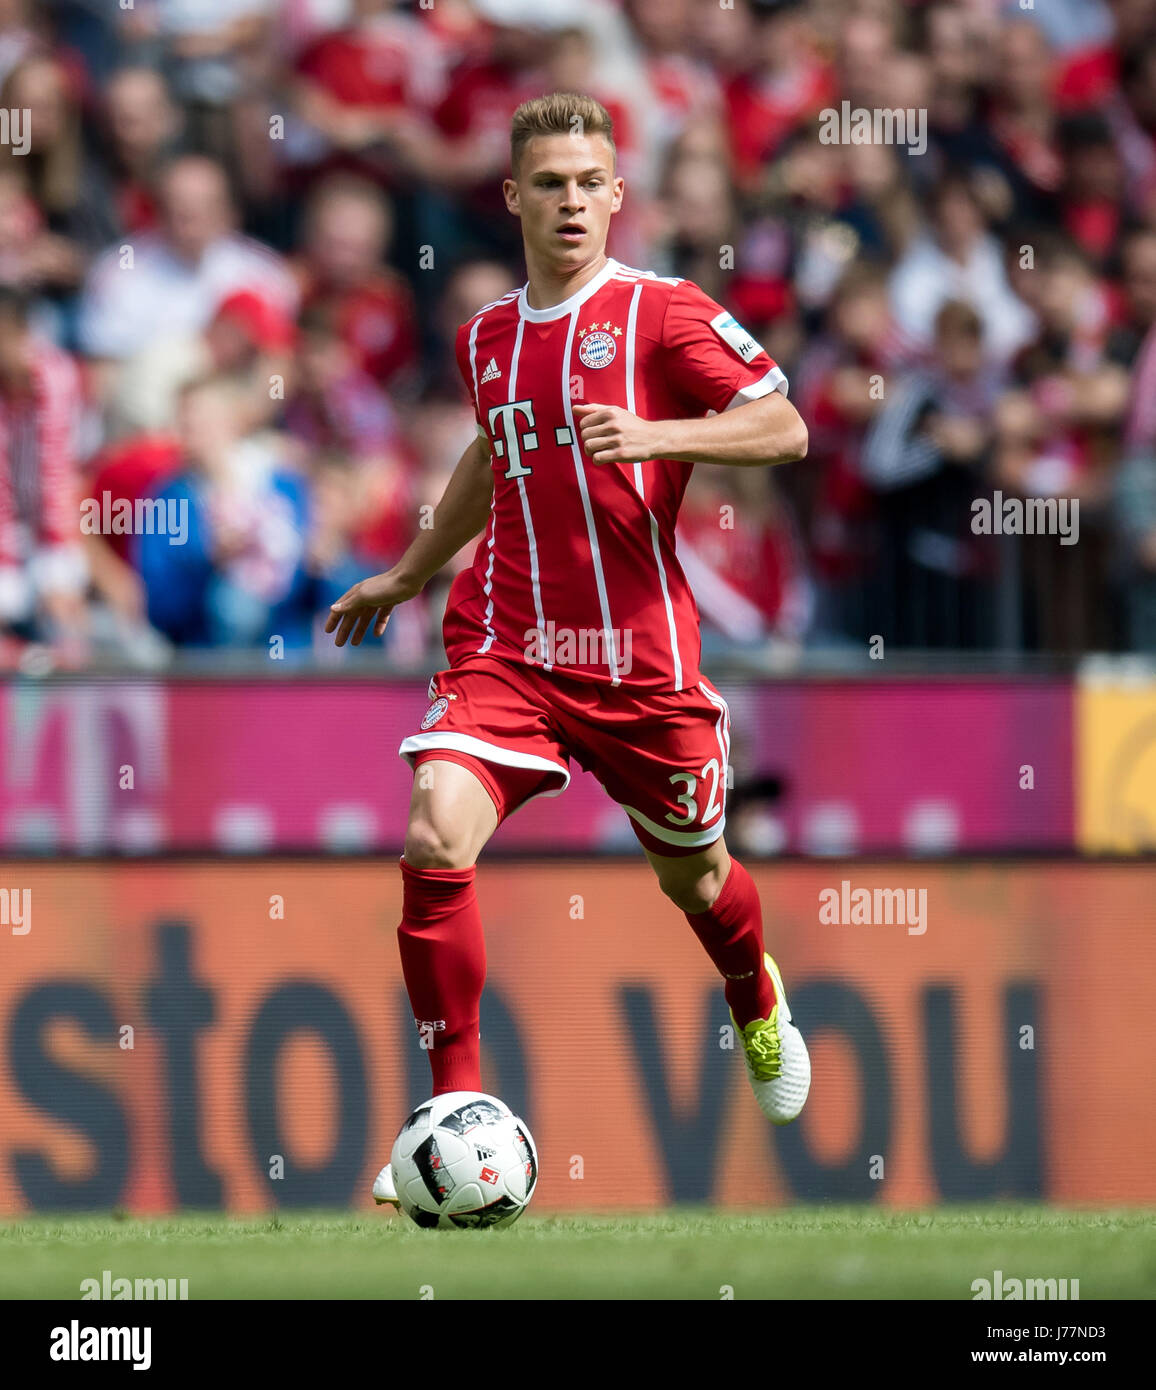 Munich s Joshua Kimmich in action during the German Bundesliga